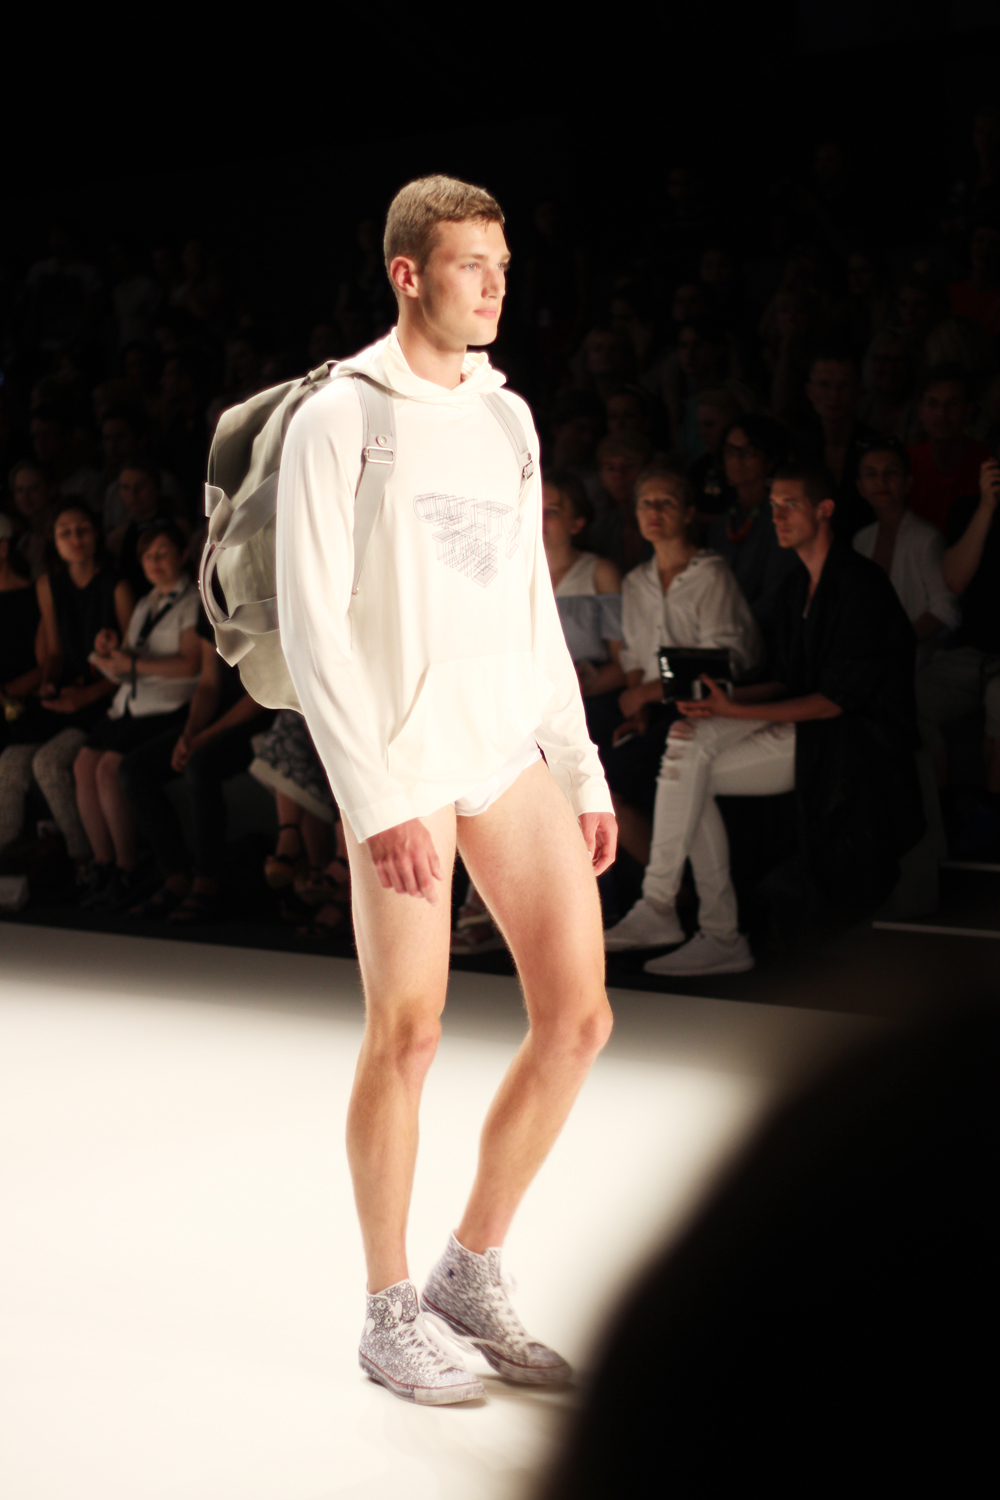 fatimayarie-berlinfashionweek-julianzigerli-menswear-runway-white-legs-img_4279